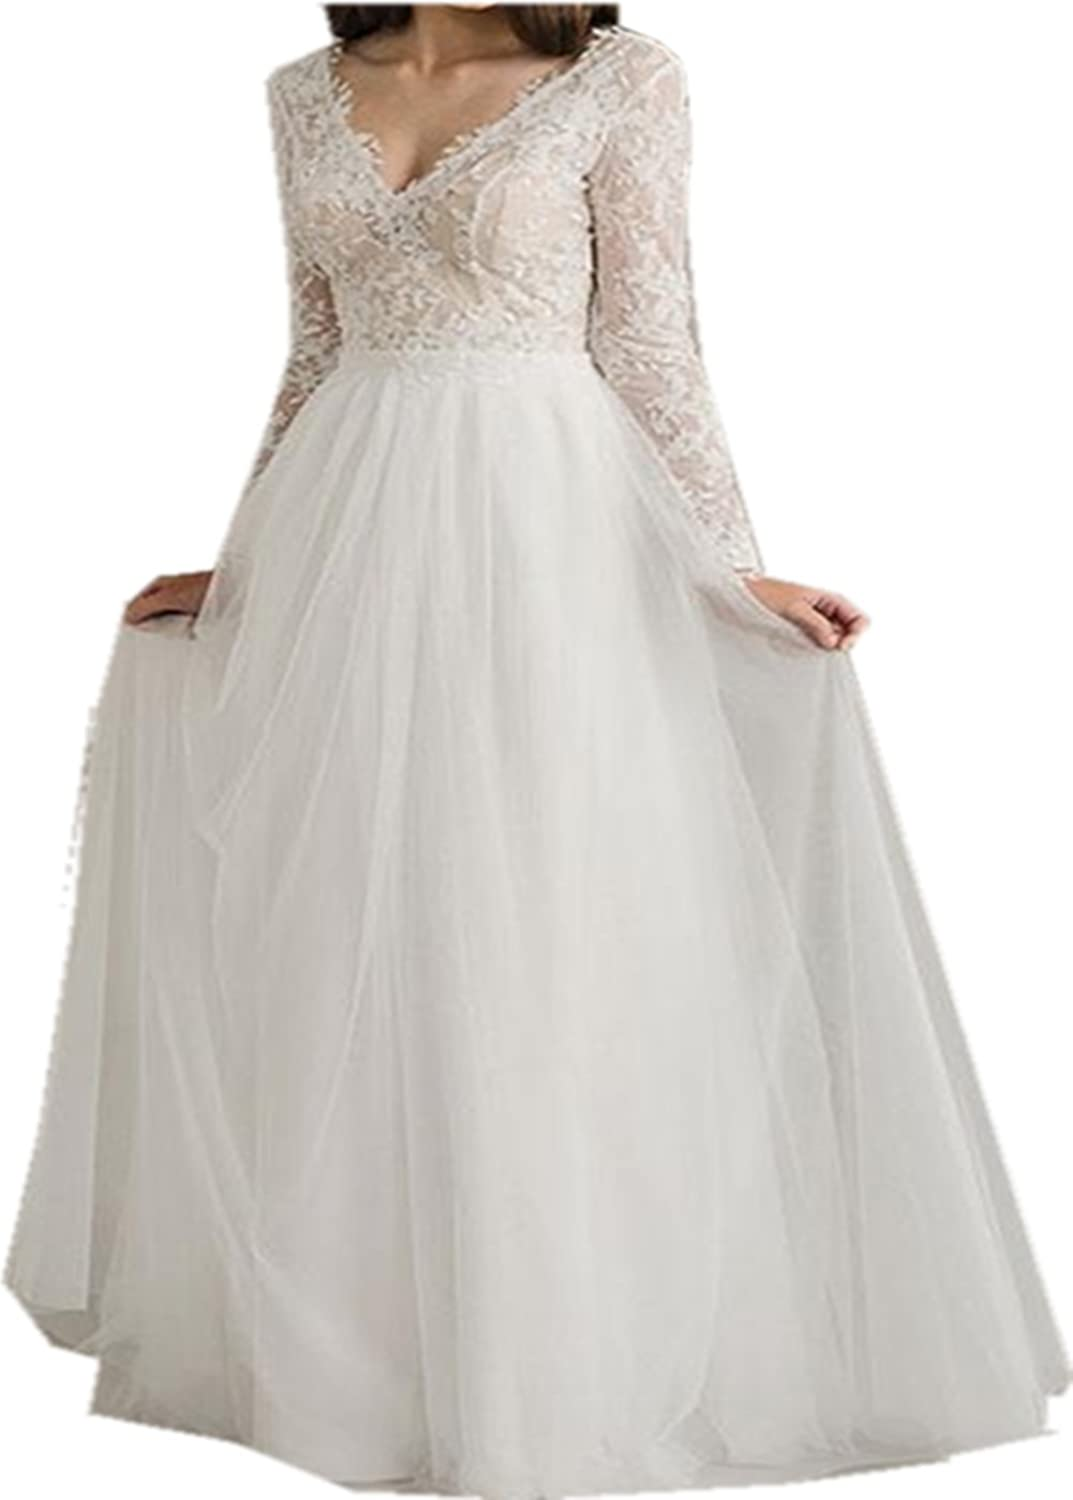 Muisal Women's Robe Vintage Western Country Lace A Line Ivory Wedding Dresses Long Sleeve with Lace Wedding Dress Evening Dresses